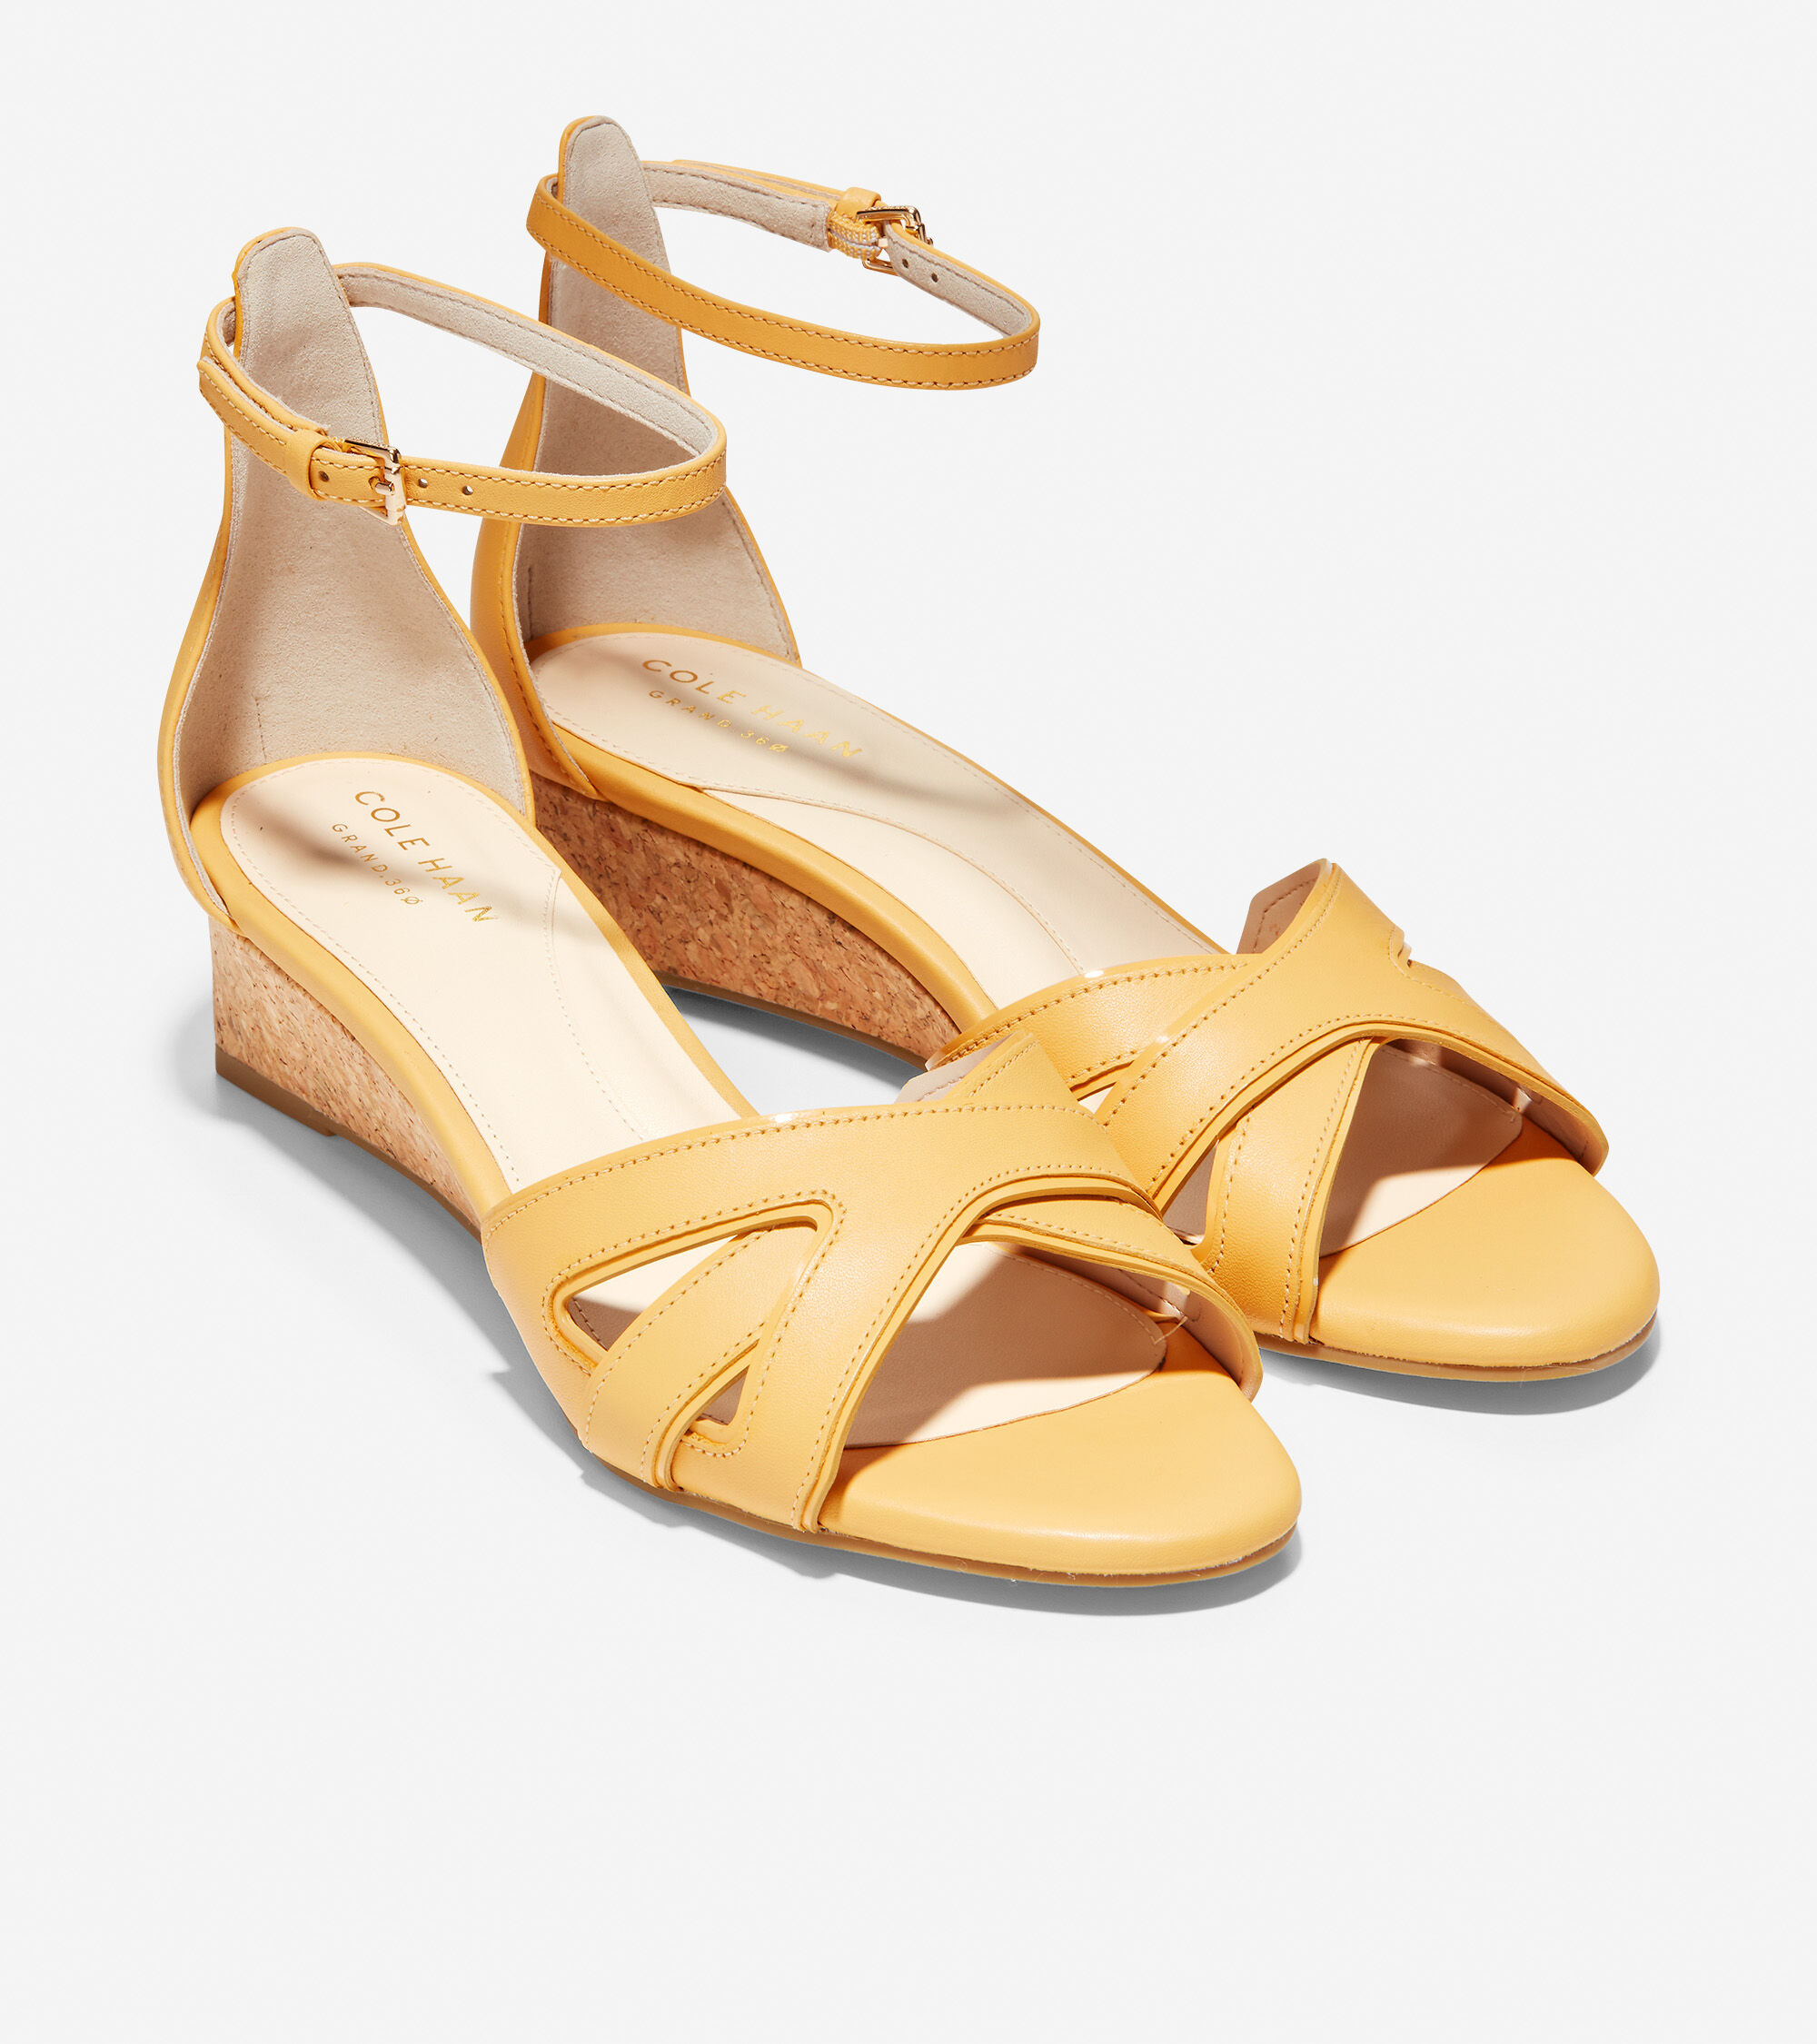 df0571999 Cole Haan Hana Grand Wedge in Sunset Gold Leather-Patent Cork ...